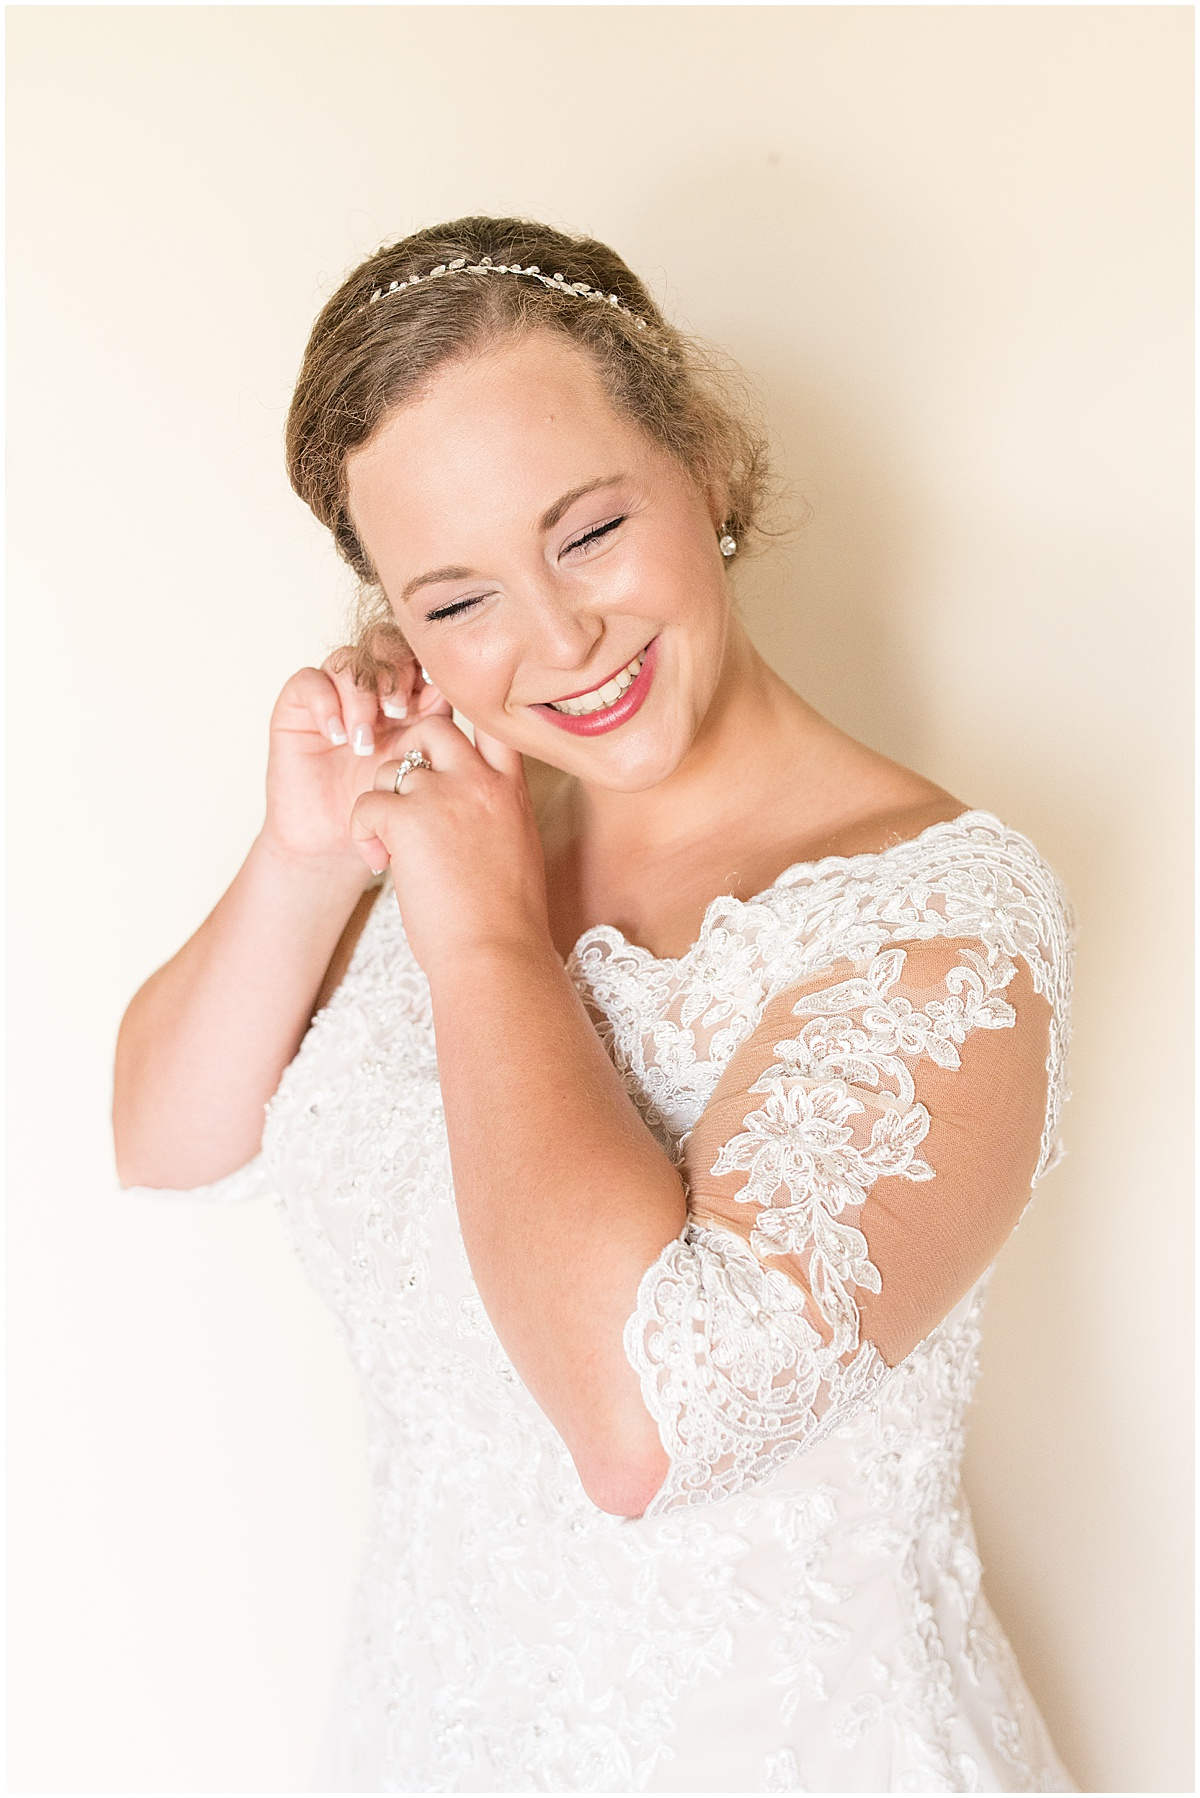 Bride getting ready photos at Meadow Springs Manor wedding in Francesville, Indiana